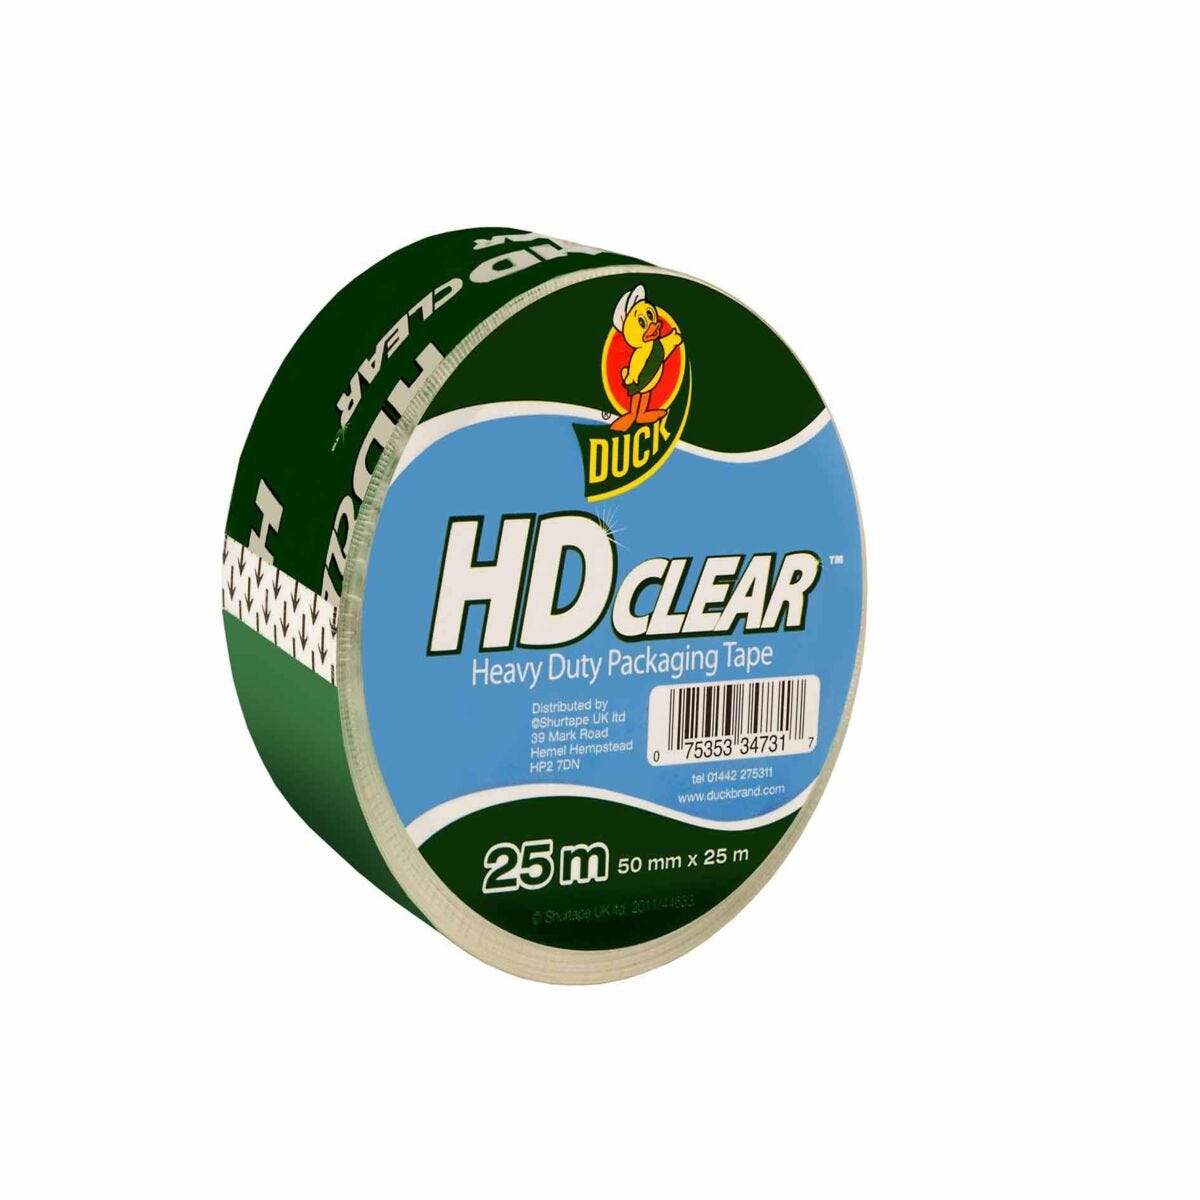 Duck Heavy Duty Packaging Tape 50mmx25m Pack of 6 Clear